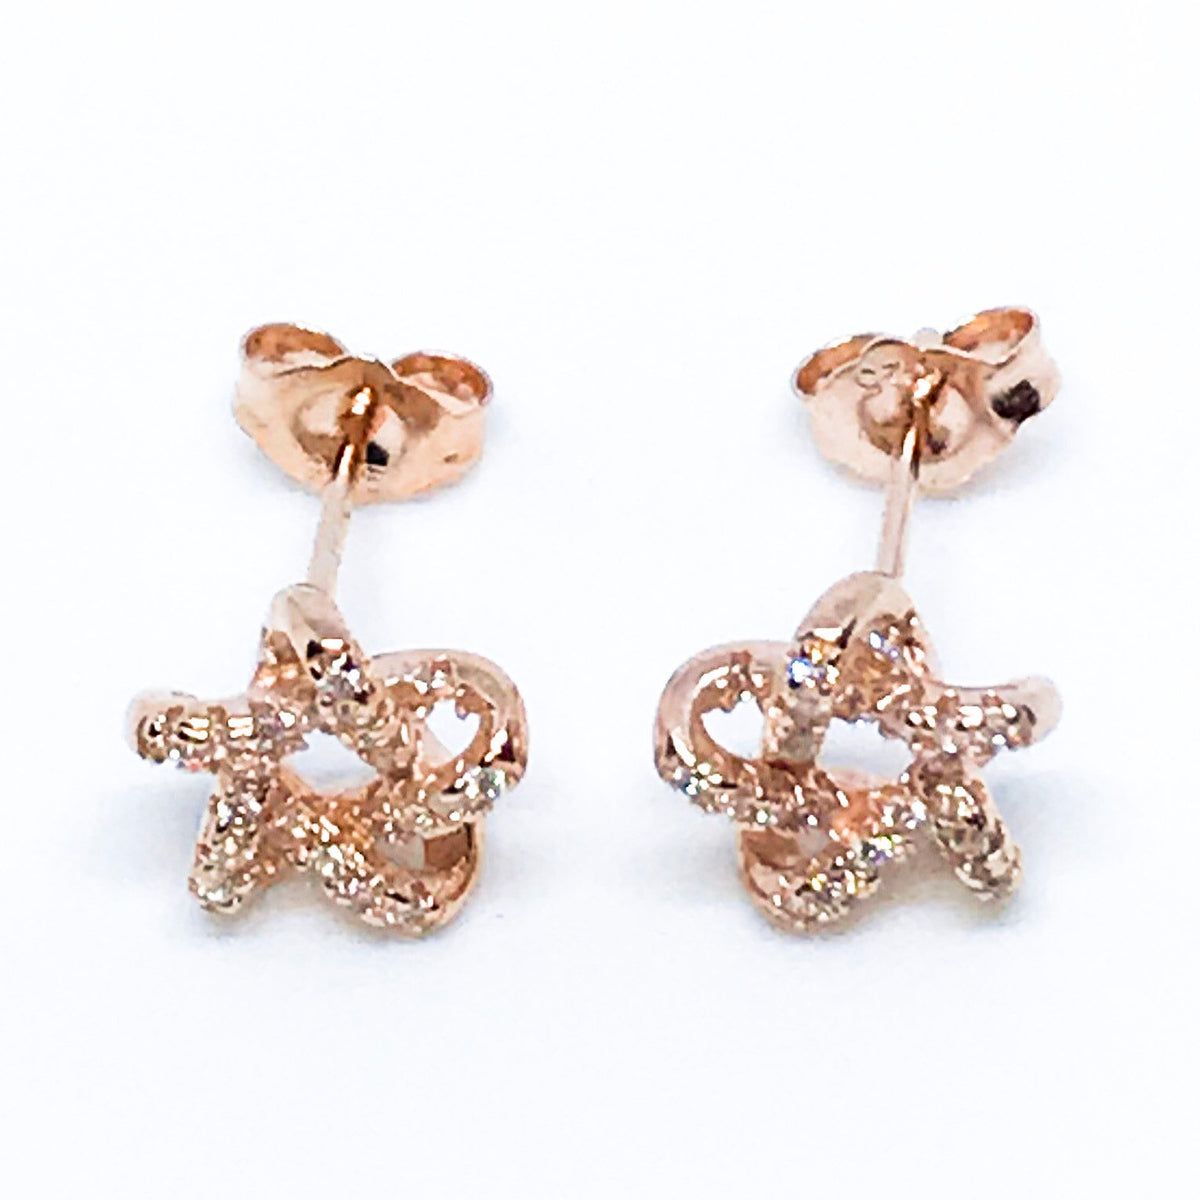 14k Rose Gold Layered on Sterling Silver Star Earrings - 3 Royal Dazzy